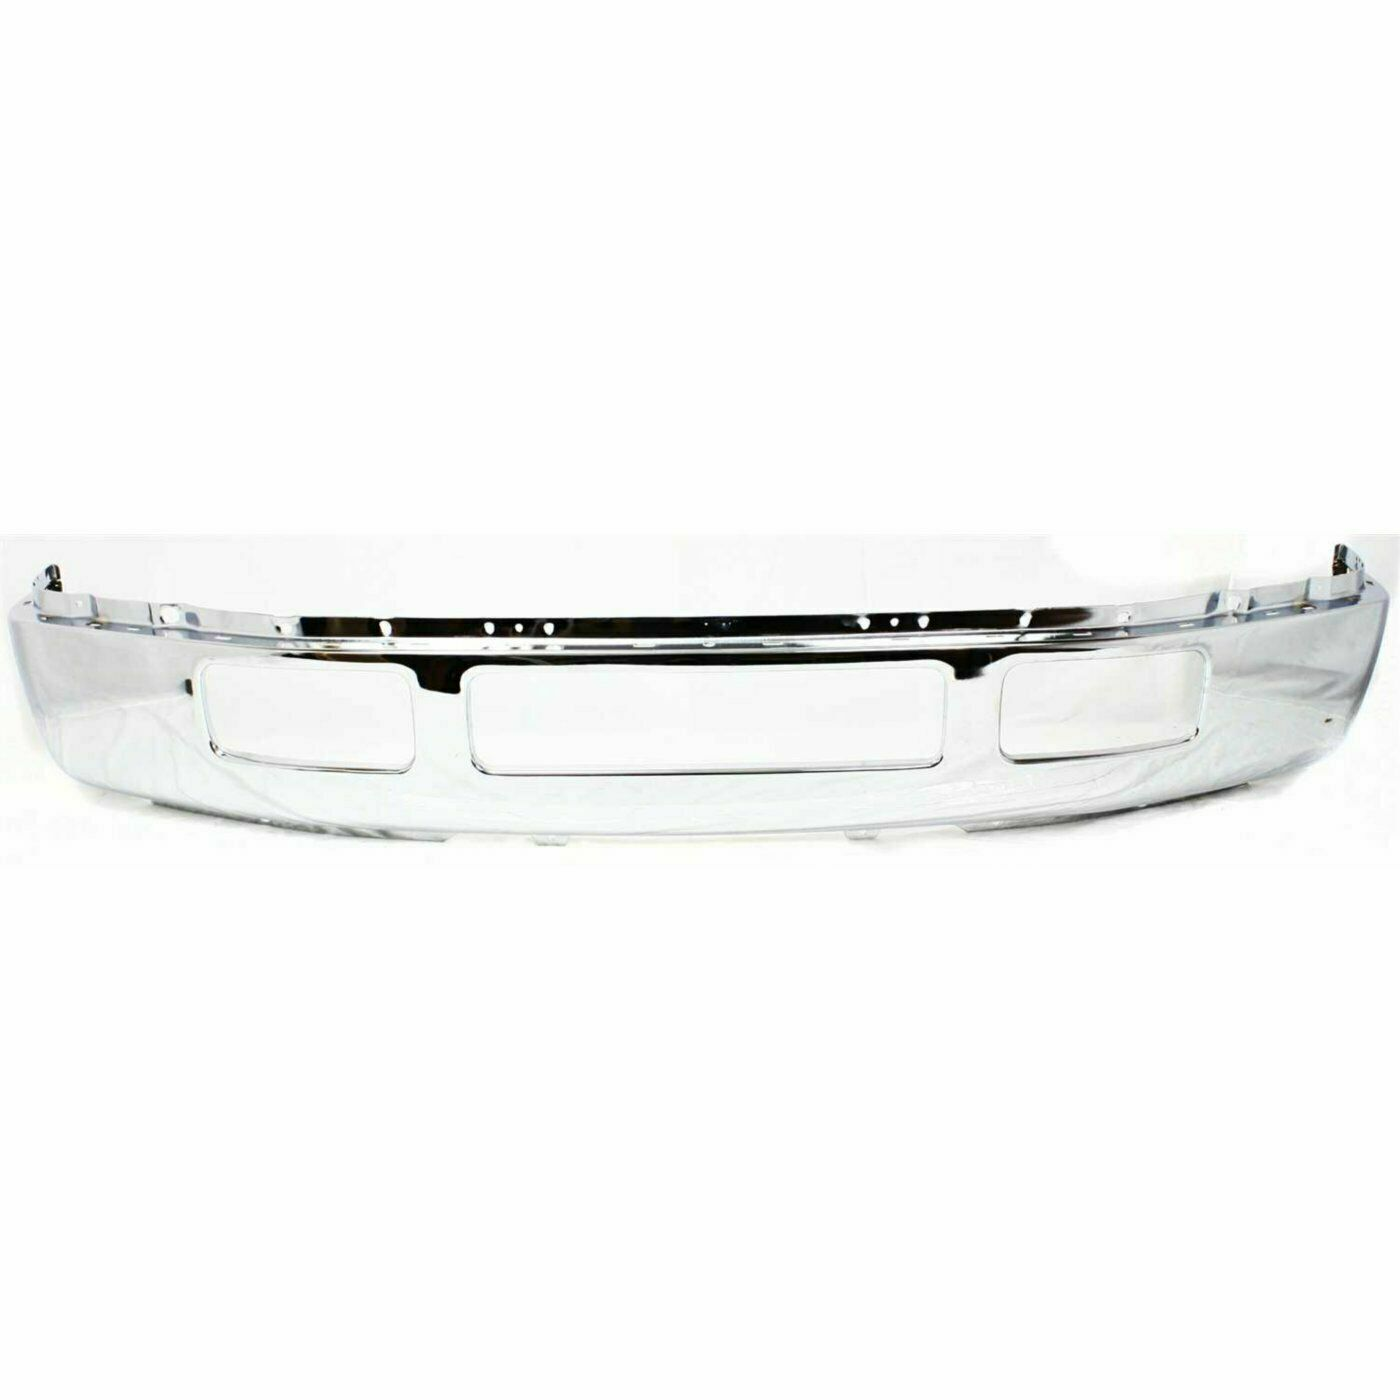 New Front Bumper Face Bar Chrome For 2005-2007 Ford Super Duty F-250 F-350 XLT//XL Cab /& Chassis /& Crew Cab Pickup Direct Replacement Lower Valance Panel Textured Upper Cover Primed